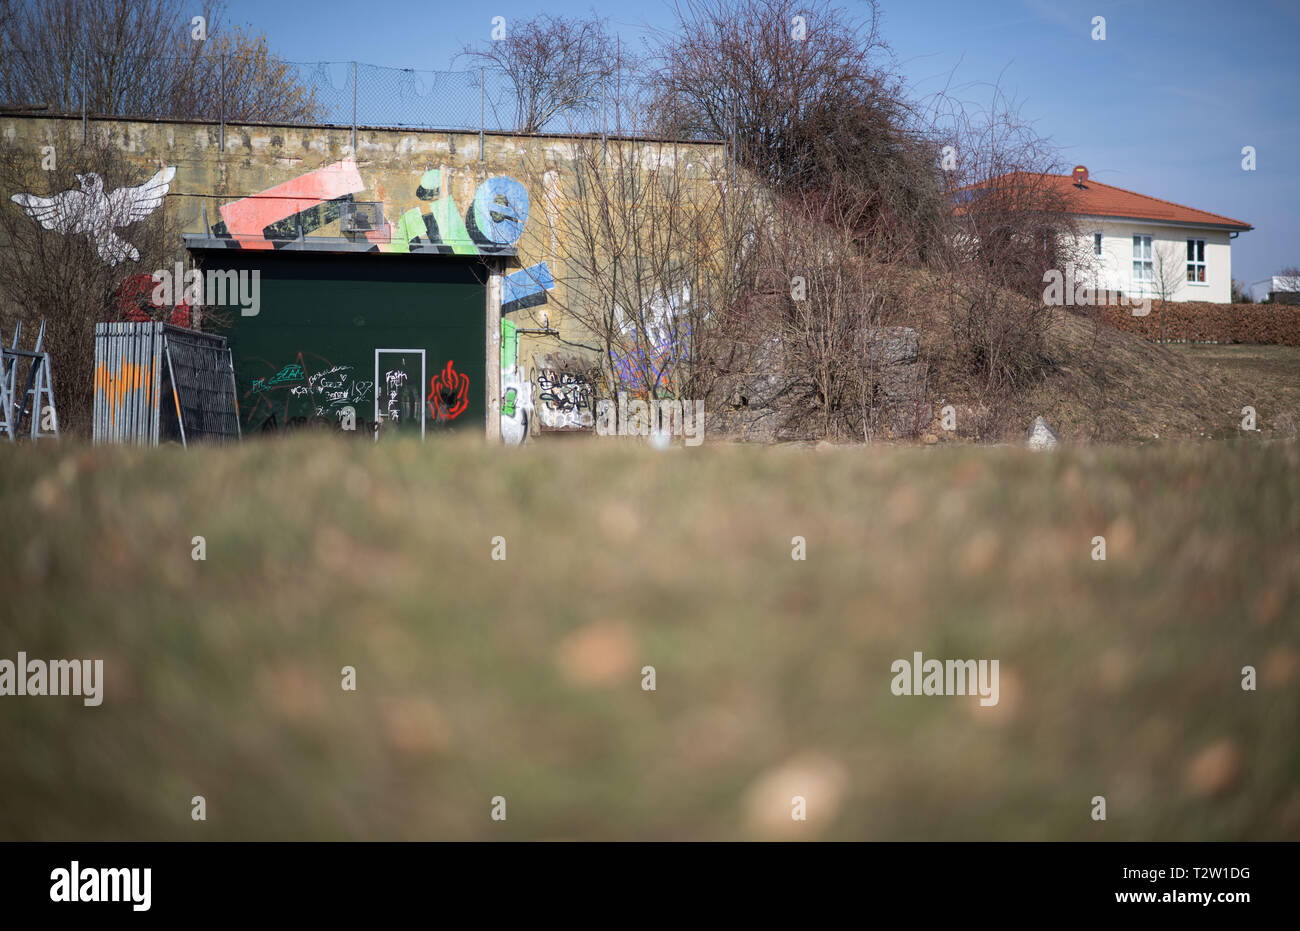 Mutlangen, Germany. 28th Feb, 2019. A bunker stands at the edge of the Mutlanger Heide residential area. Before being converted into a residential area, the site served as a missile base on which US medium-range nuclear missiles of the Pershing II type were stationed. (to dpa: 'No, no, Njet' - The Eastern Alb sends peace signals again) Credit: Marijan Murat/dpa/Alamy Live News - Stock Image